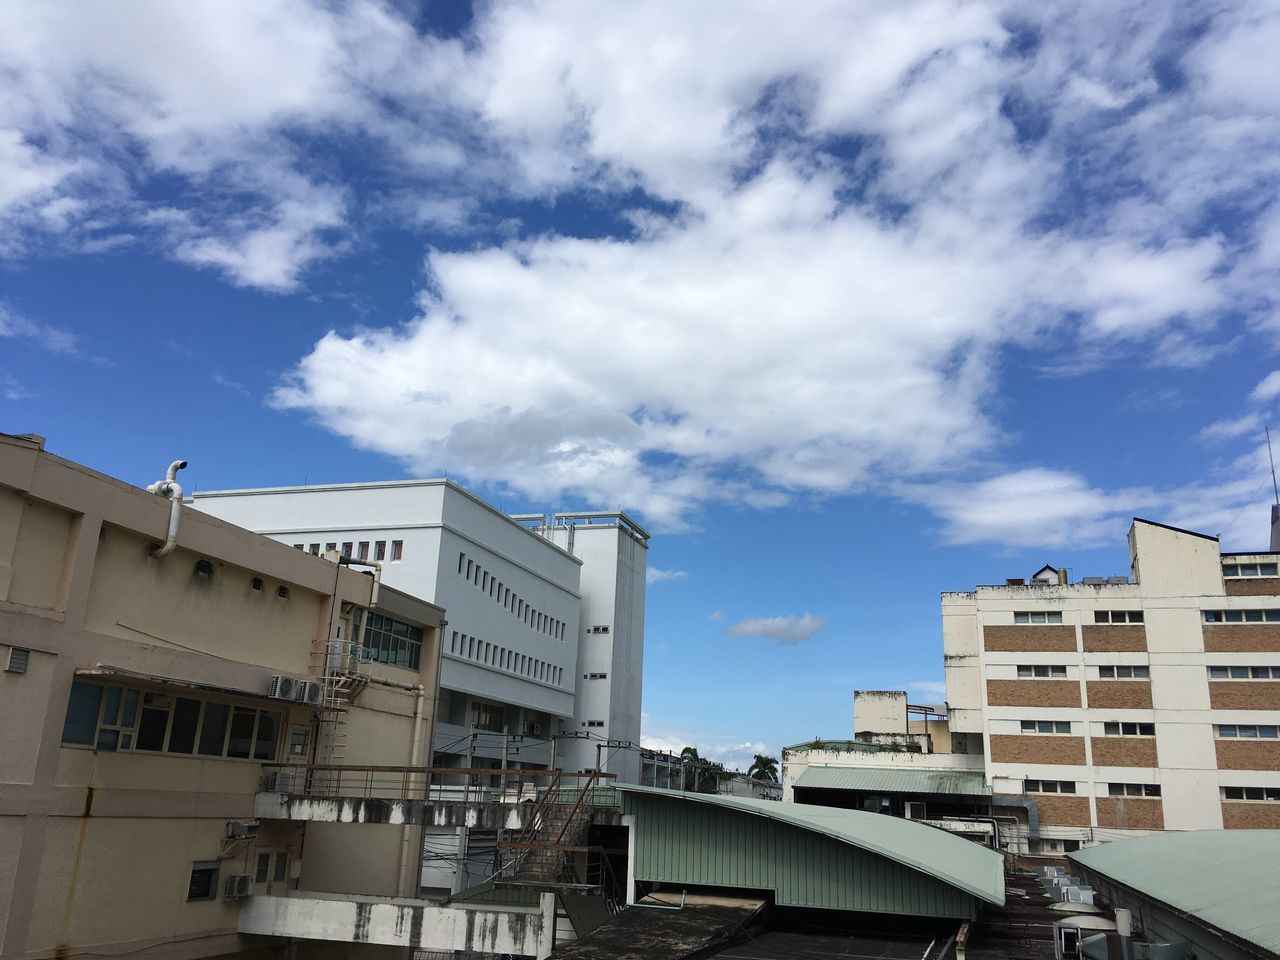 architecture, building exterior, built structure, cloud - sky, sky, low angle view, day, text, outdoors, no people, city